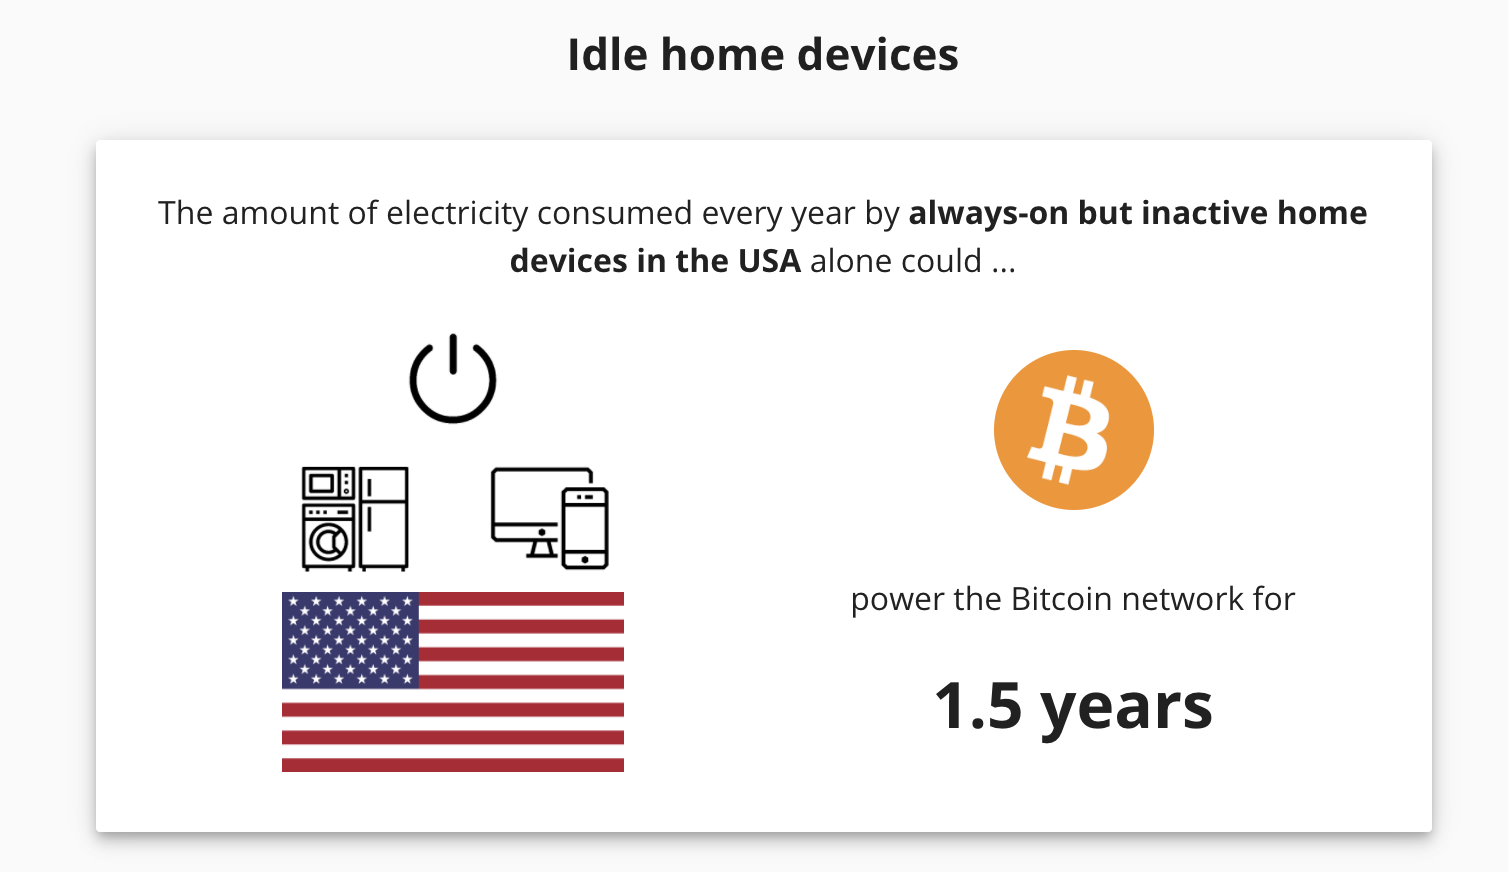 Idle devices can power bitcoin